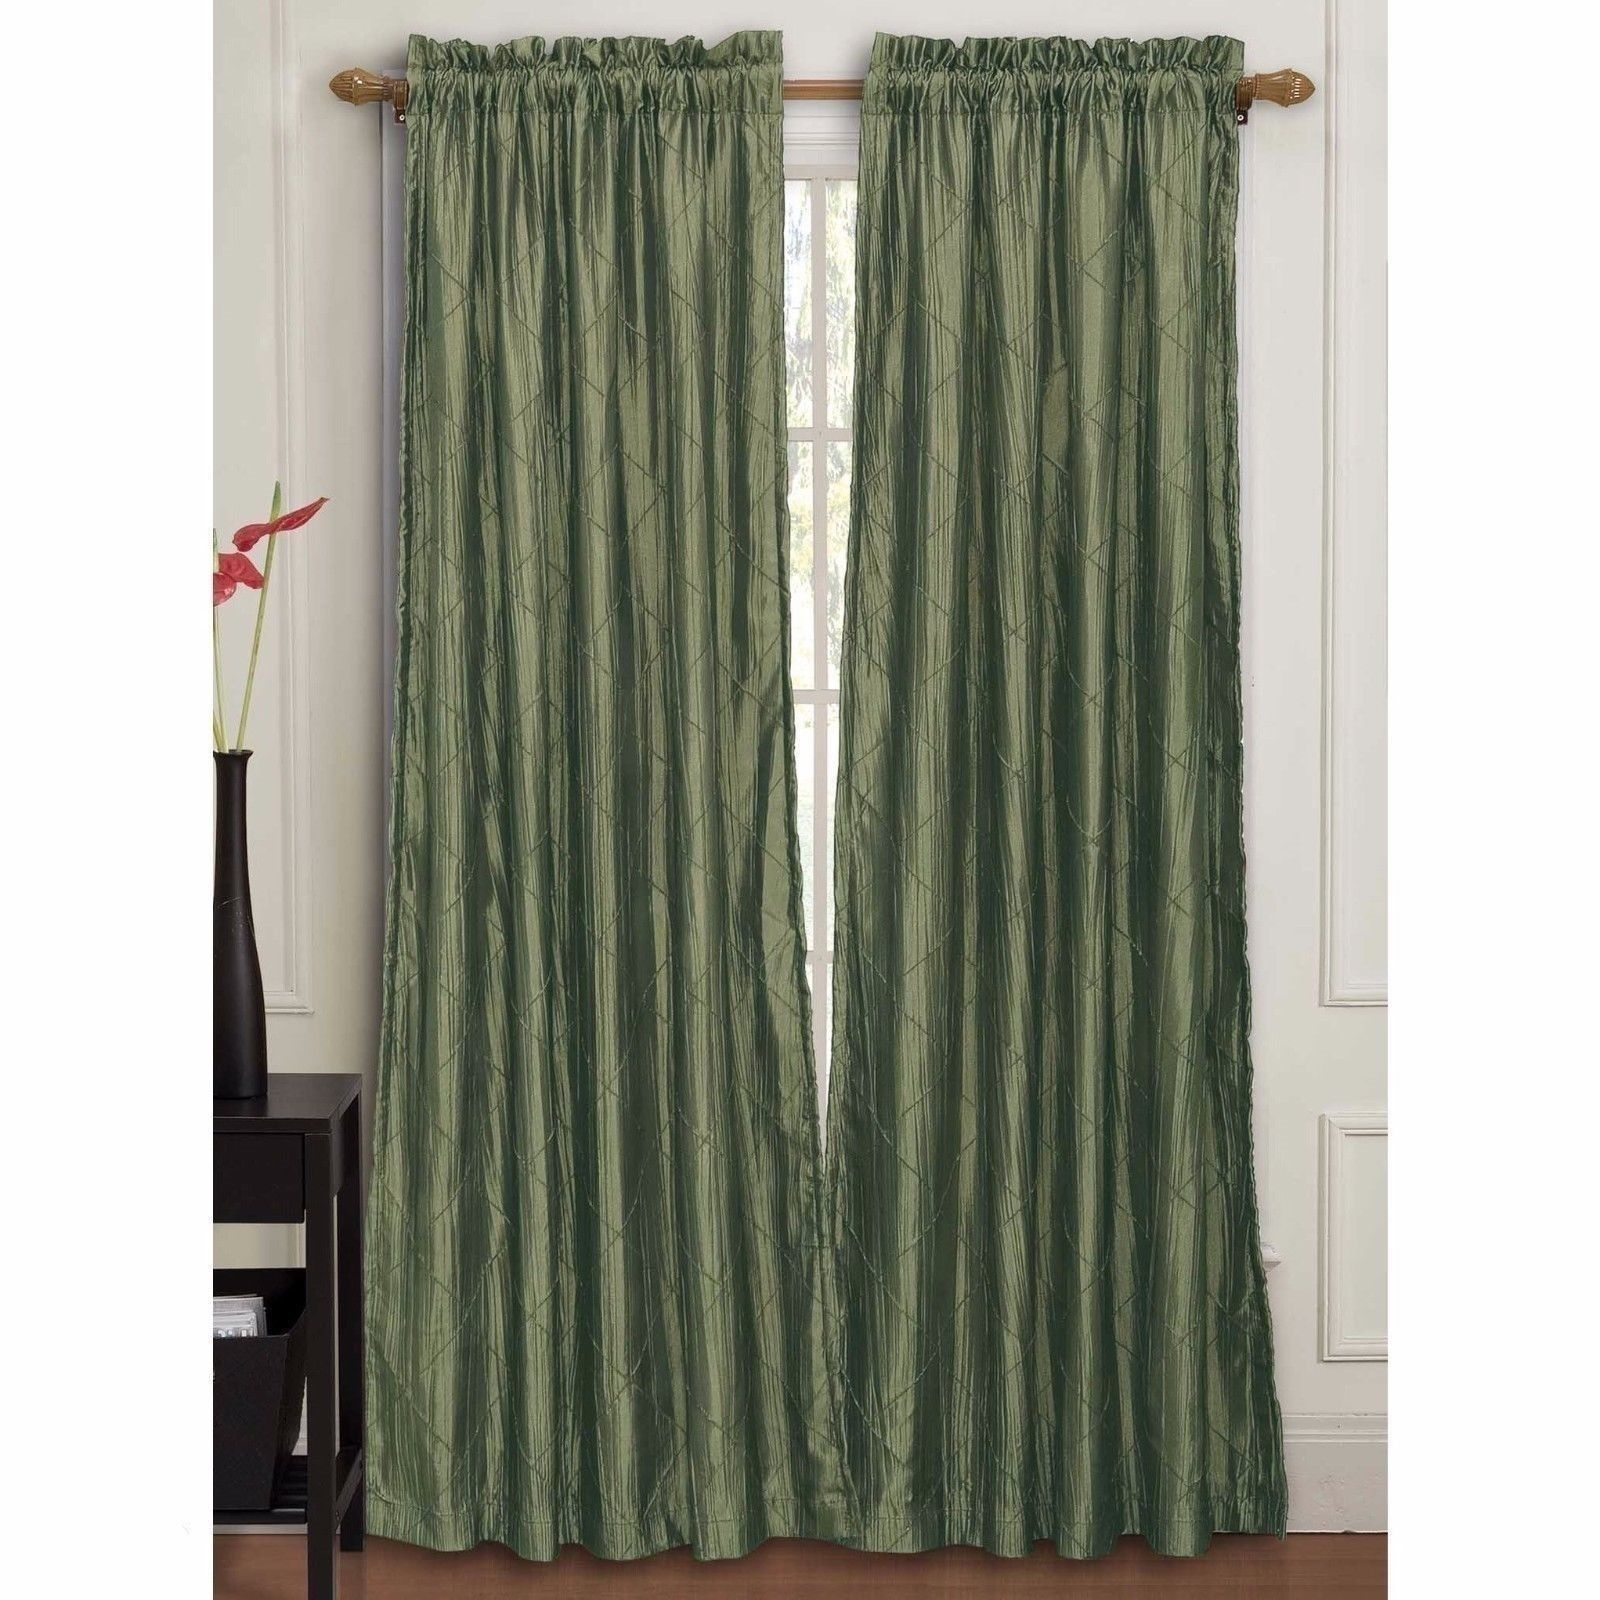 Sage Green Curtain Panels Curtains Ideas Sage Green Curtain Panels Inspiring Metallic Sage